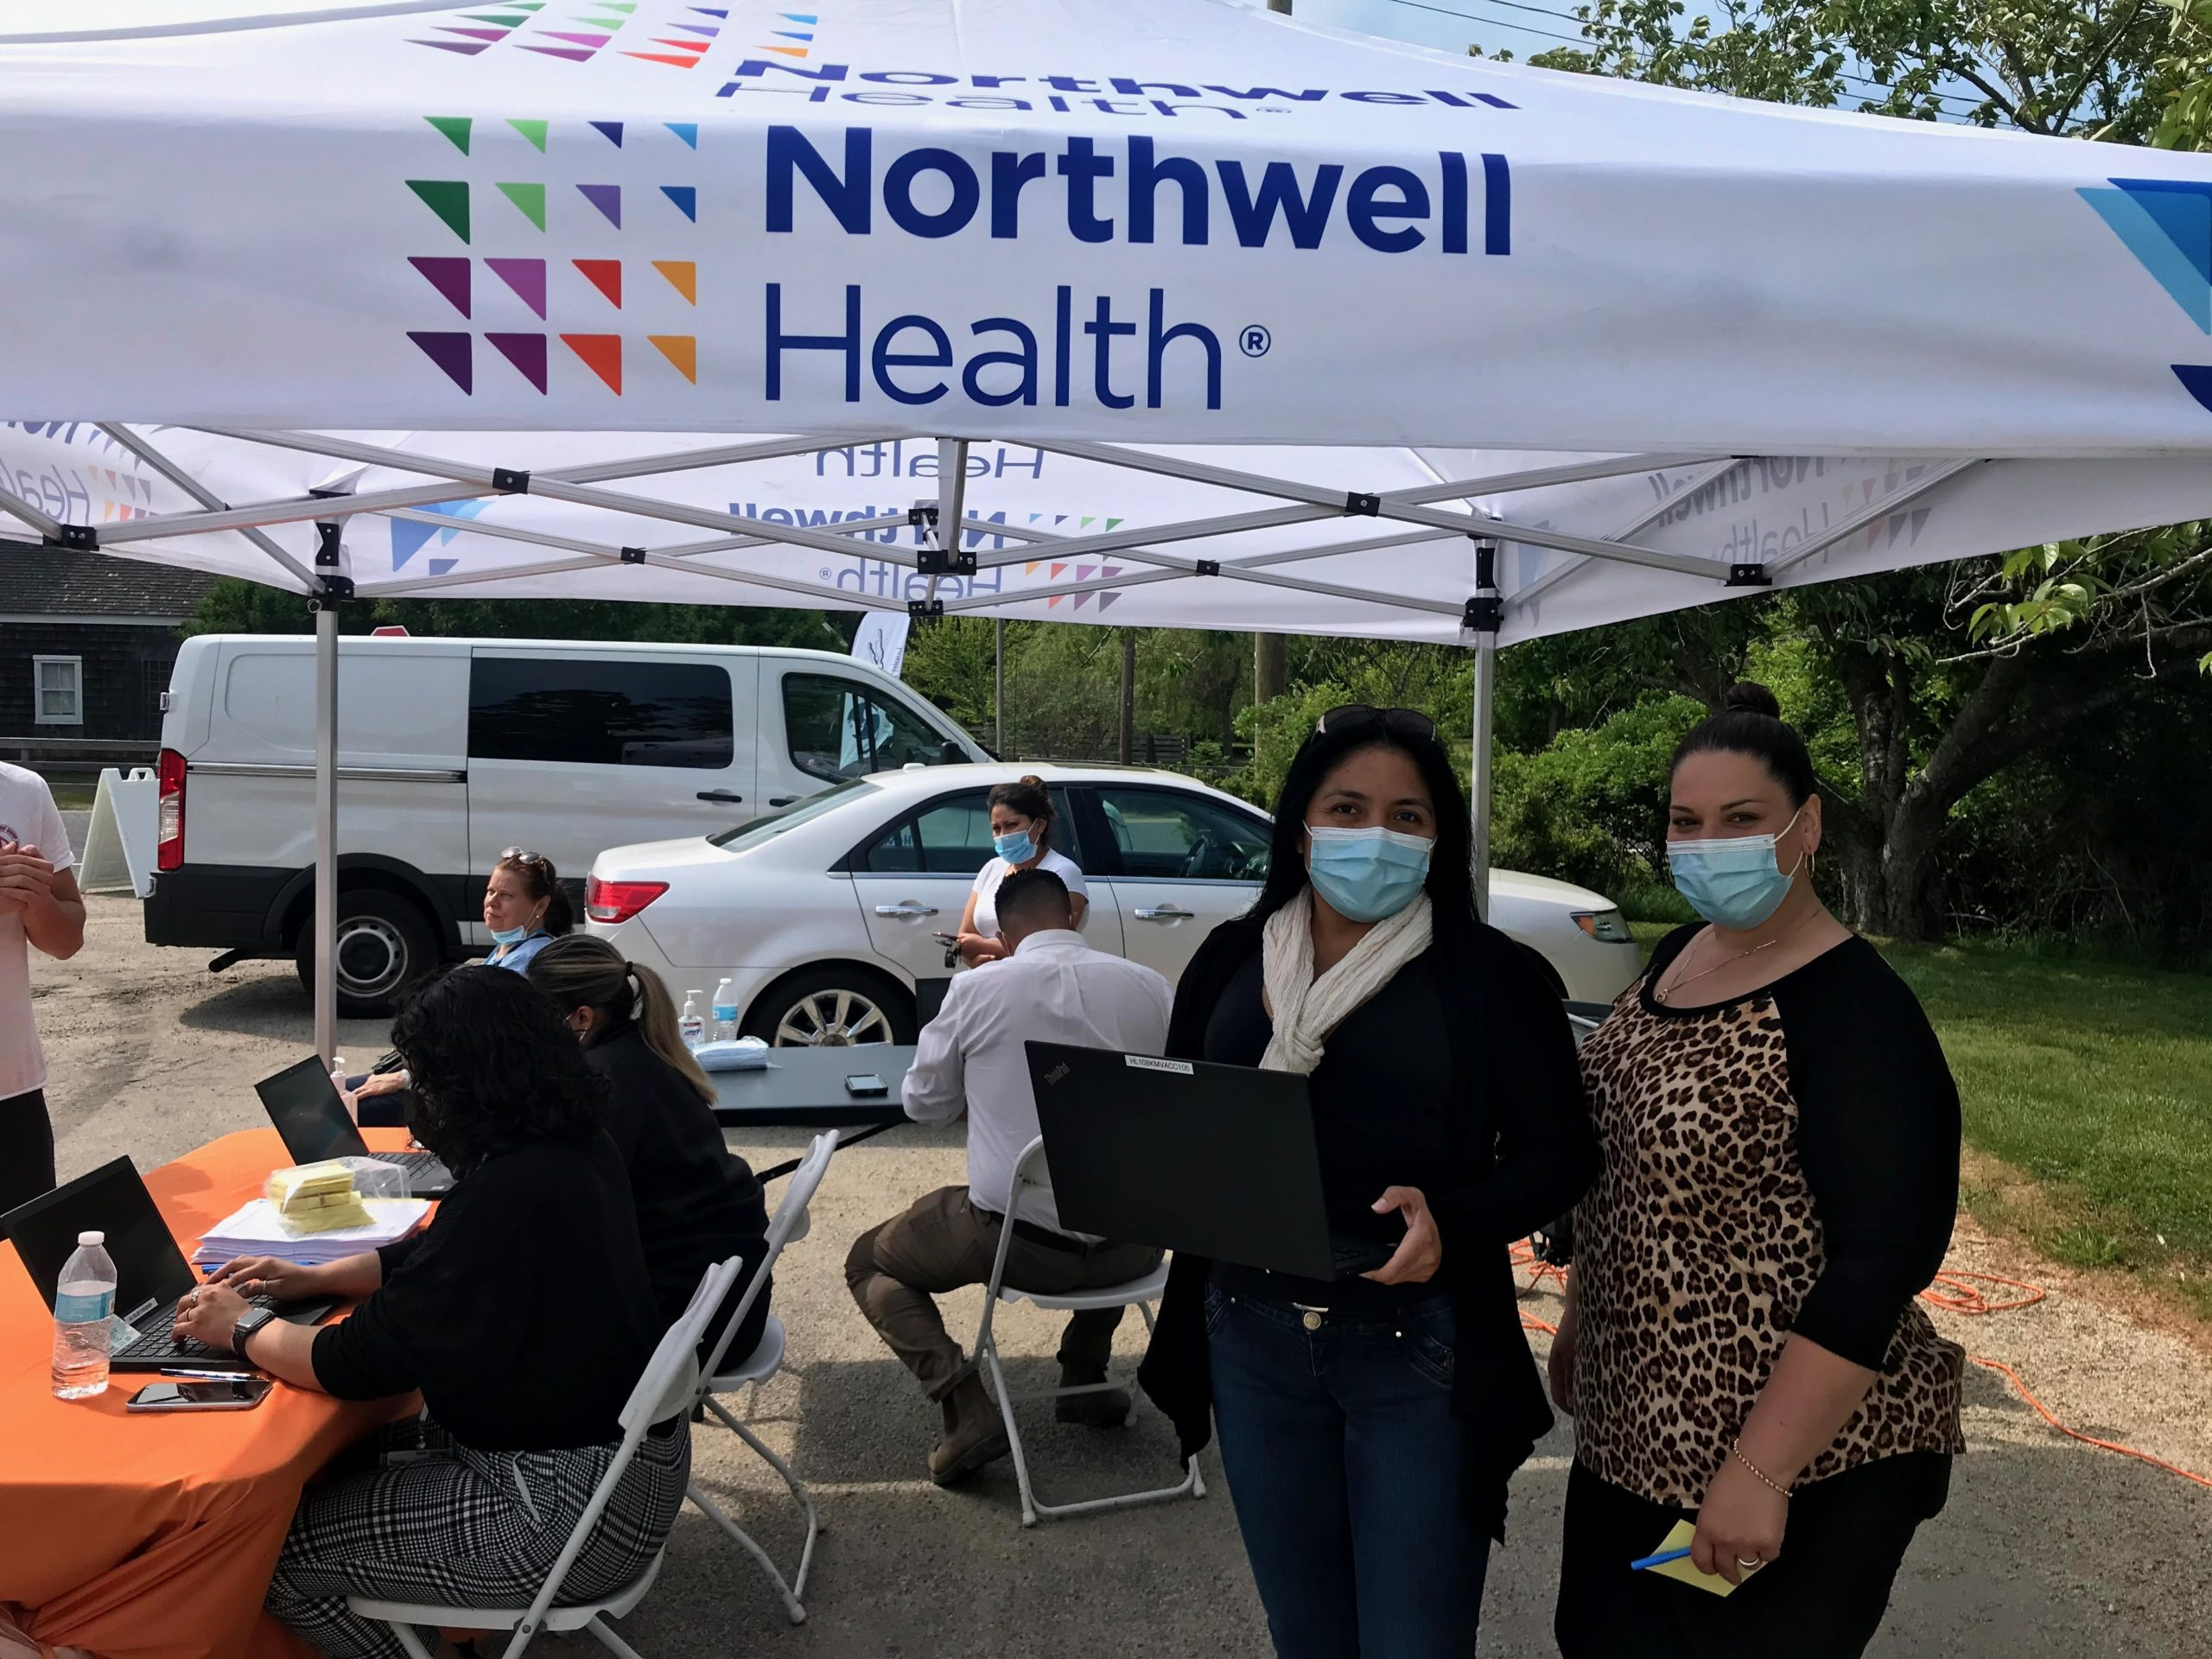 Erika Padilla, left, and Wally Ramirez of OLA of Eastern Long Island, helped organize a vaccination POD with Northwell Health at the Springs Food Pantry earlier this year in an effort to reach unvaccinated individuals in the Latino immigrant community.